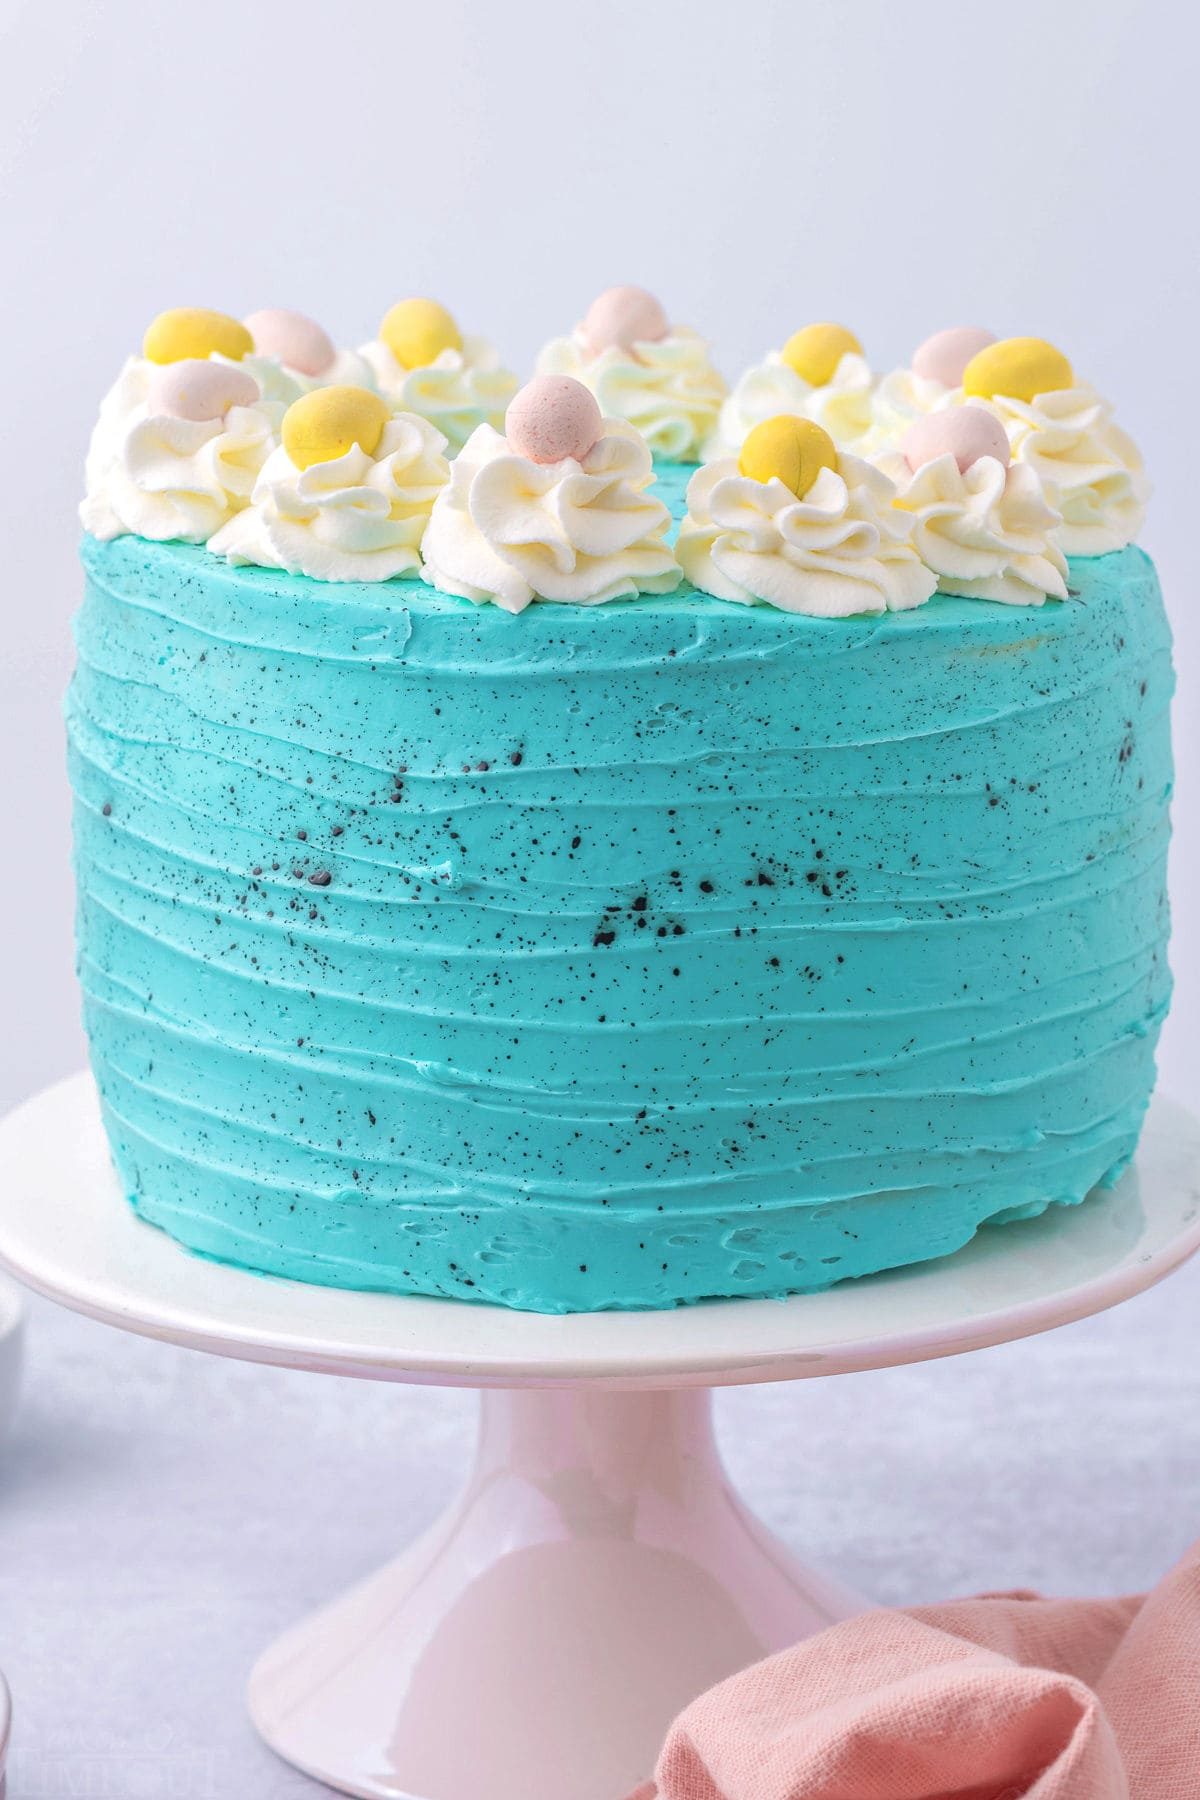 whole easter cake decorated with turquoise frosting and cadbury eggs.